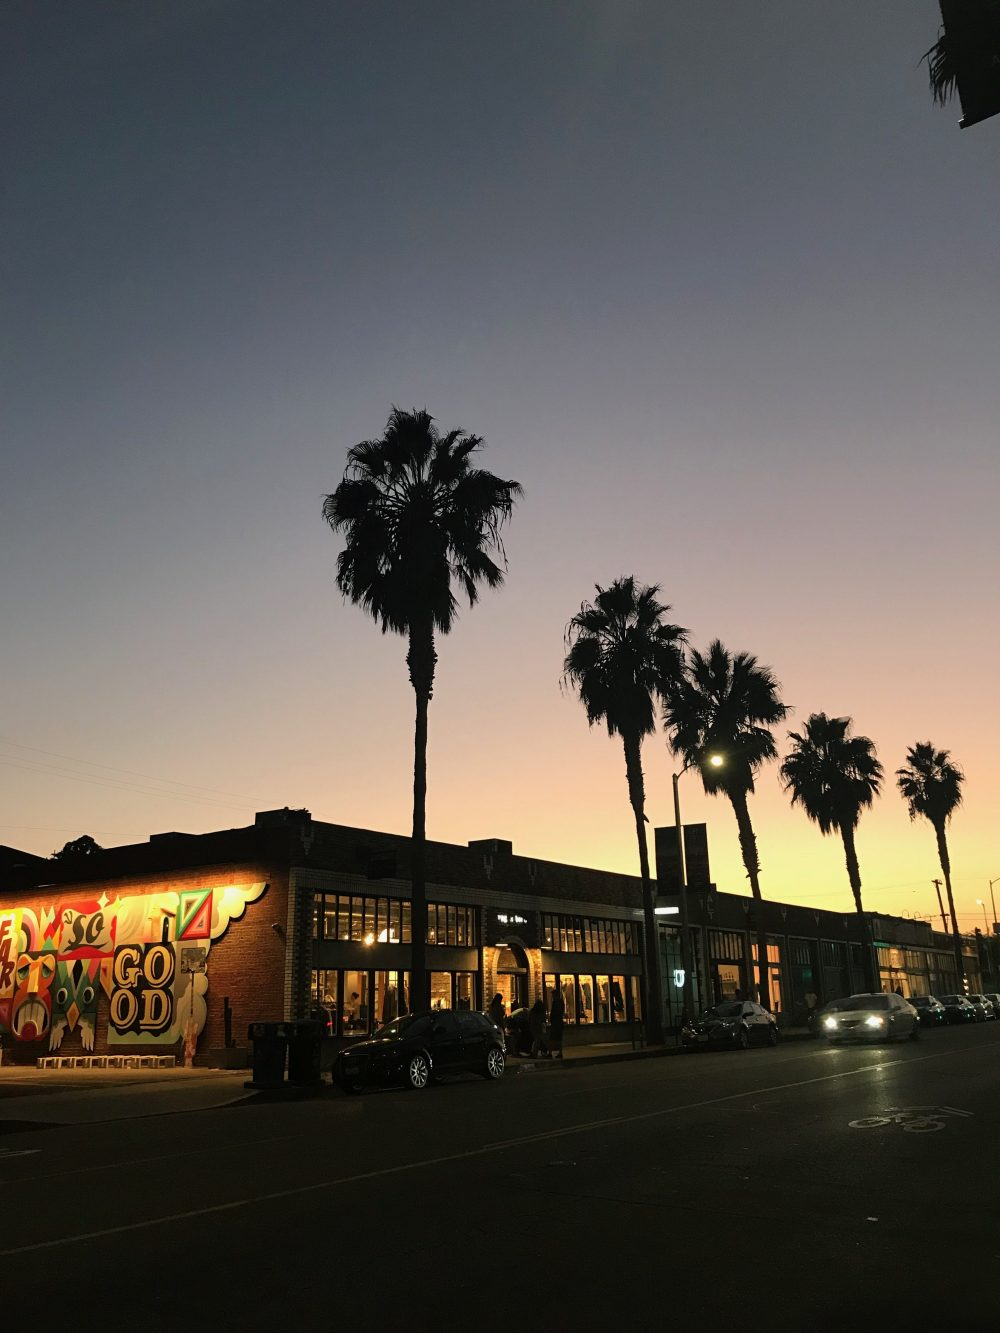 The view from The Butcher's Daughter, a Vegan Restaurant in Los Angeles